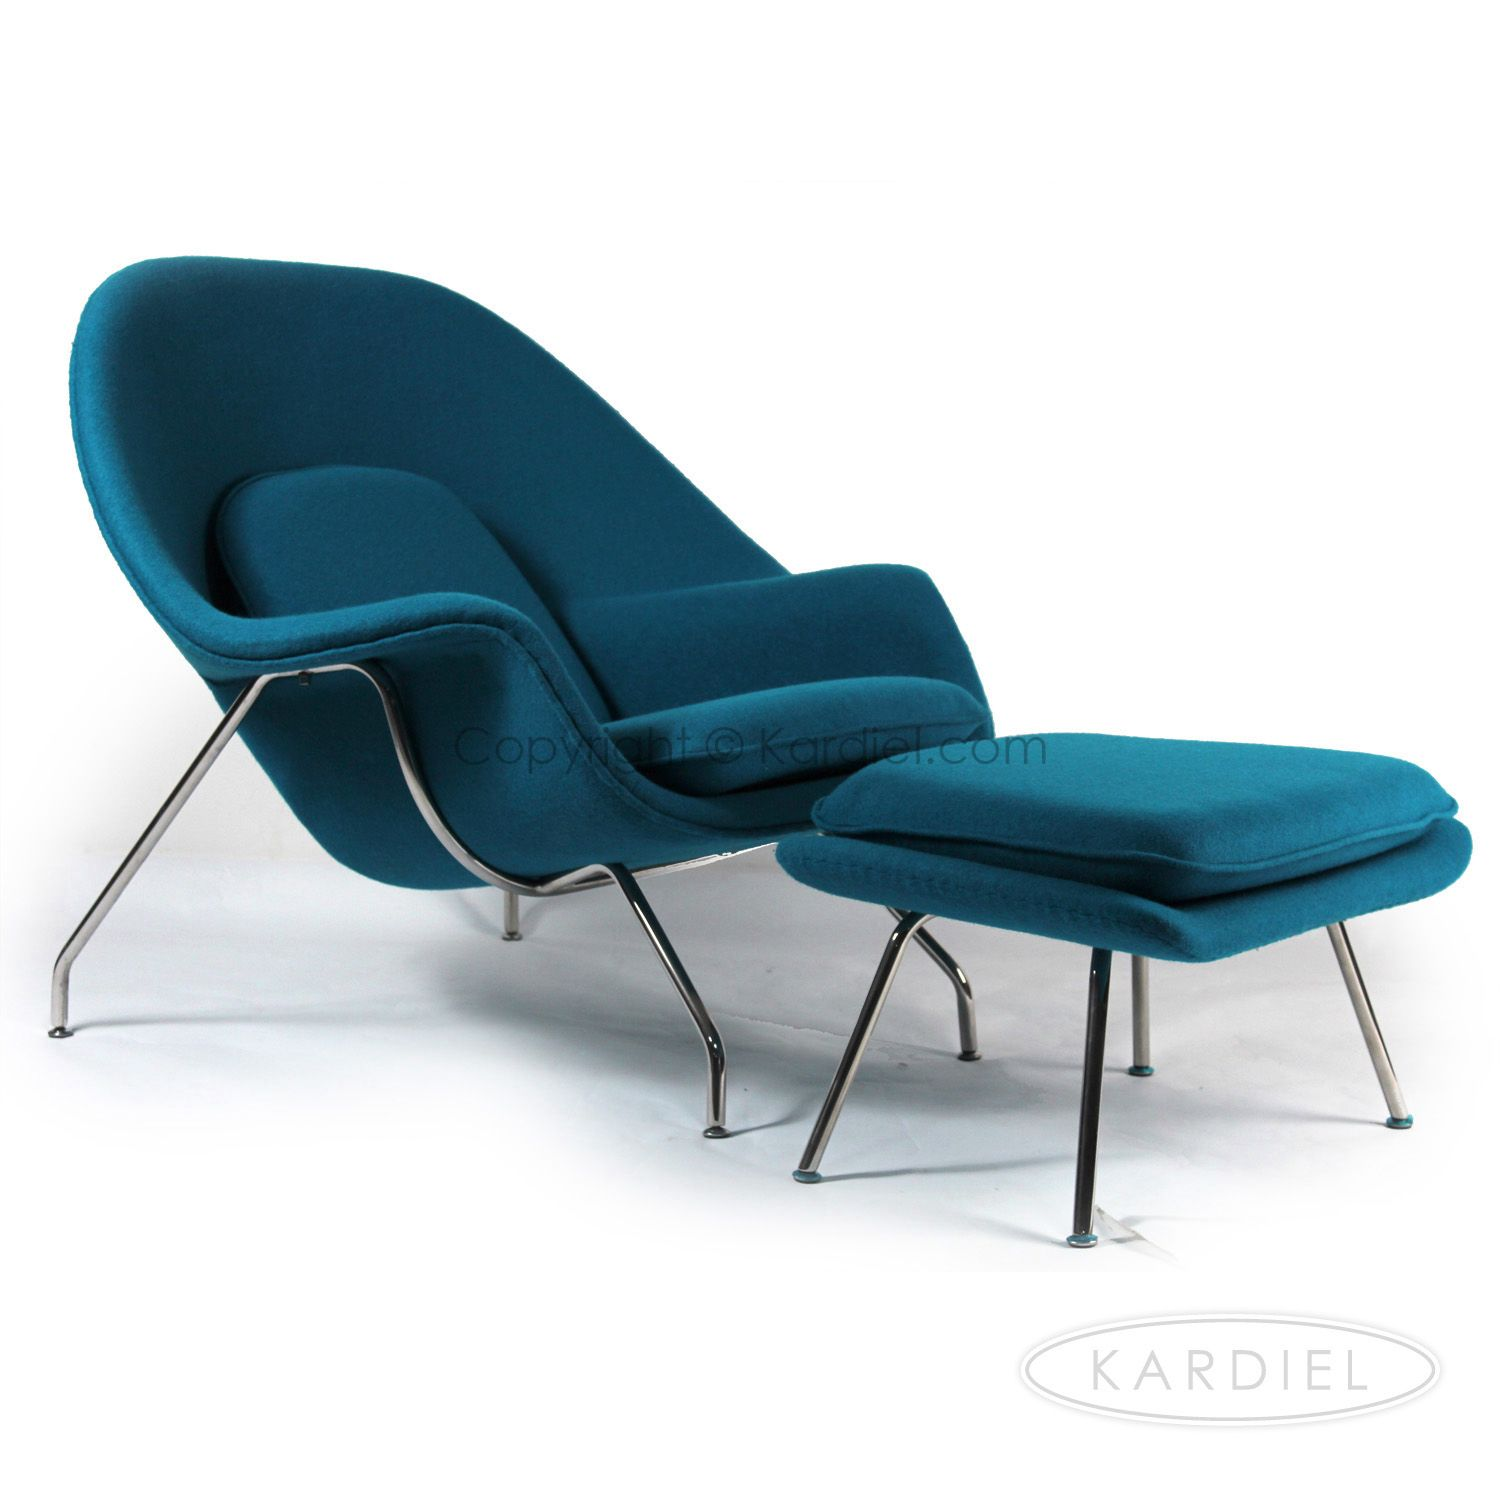 Womb Chair & Ottoman, Caribbean Danish Cashmere Wool |kardiel 799 total